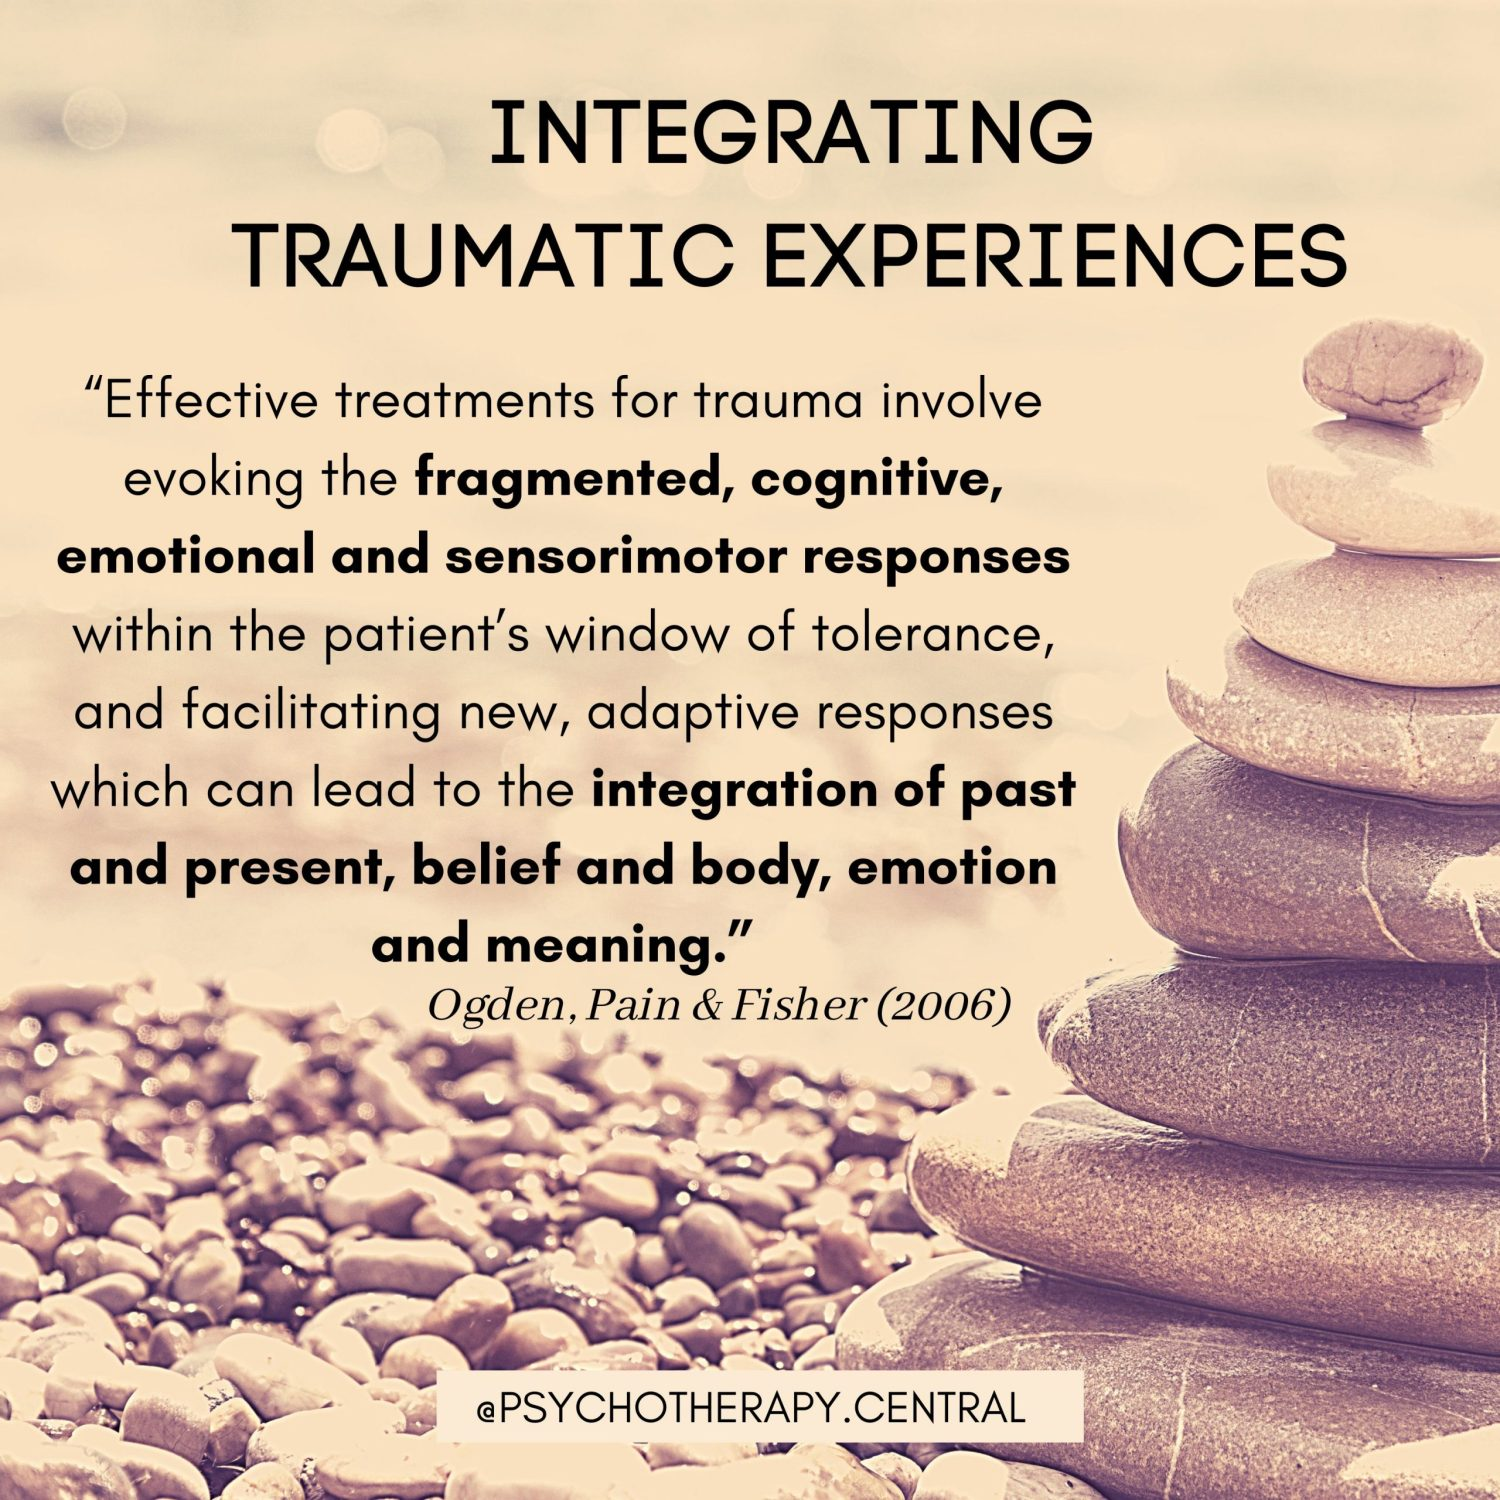 INTEGRATING-TRAUMATIC-EXPERIENCES